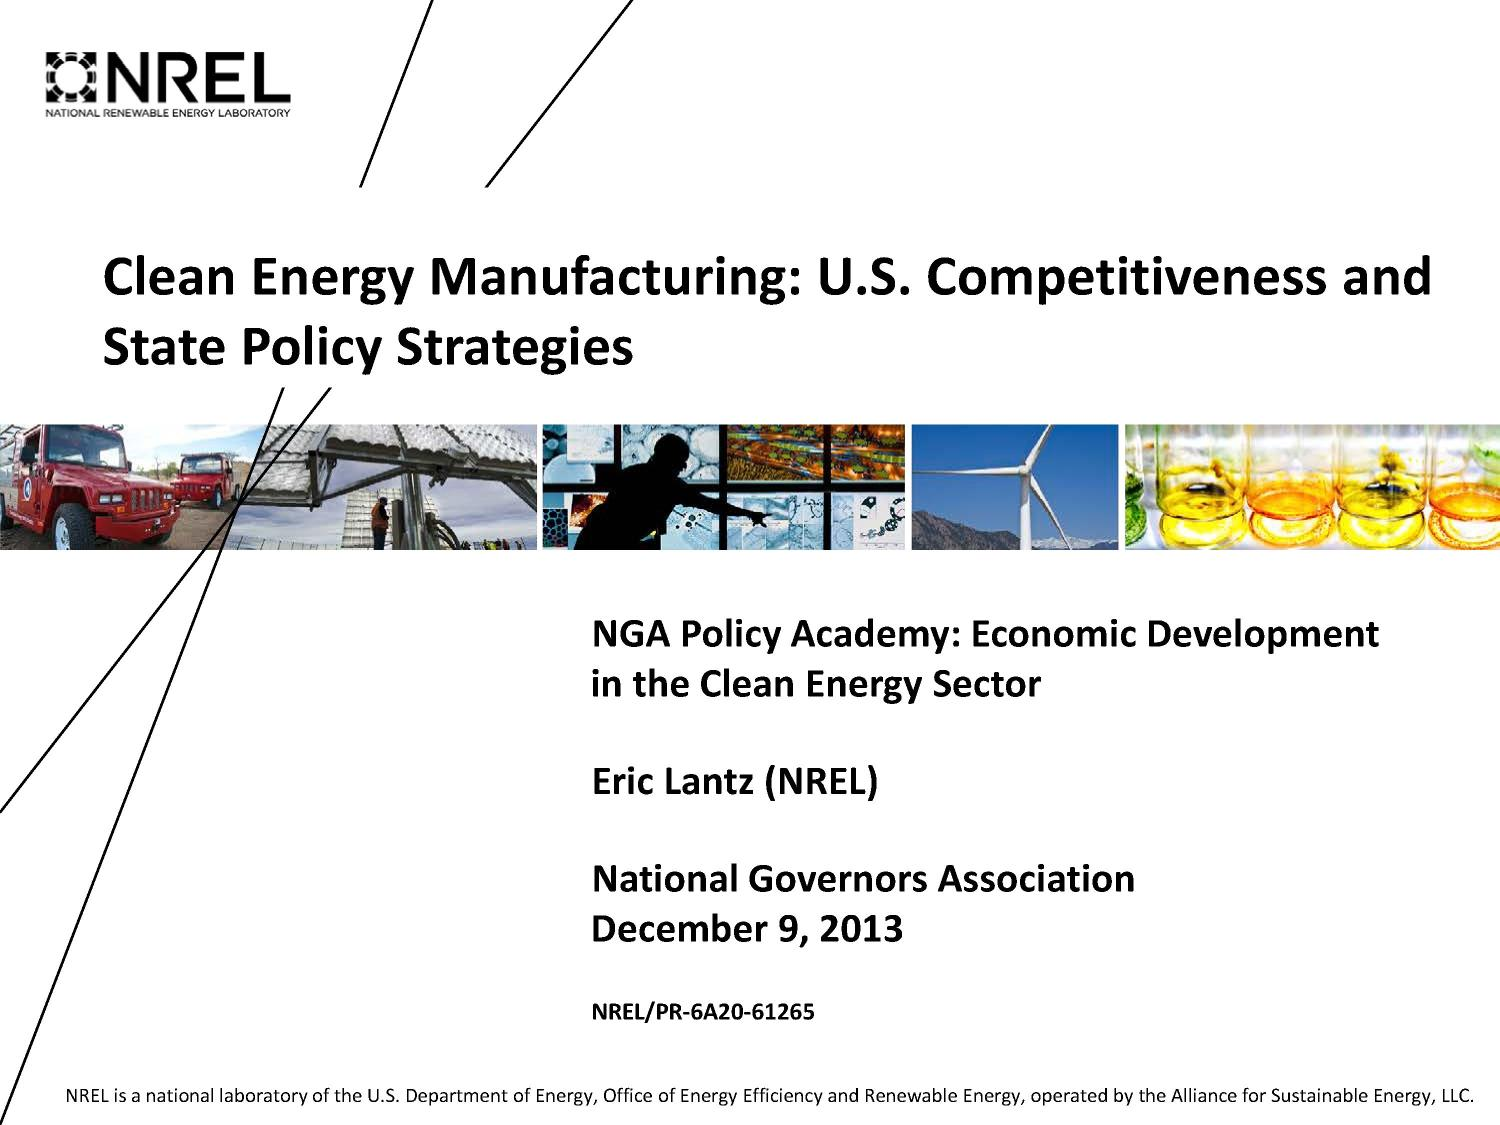 Clean Energy Manufacturing: U.S. Competitiveness and State Policy Strategies (Presentation)                                                                                                      [Sequence #]: 1 of 21